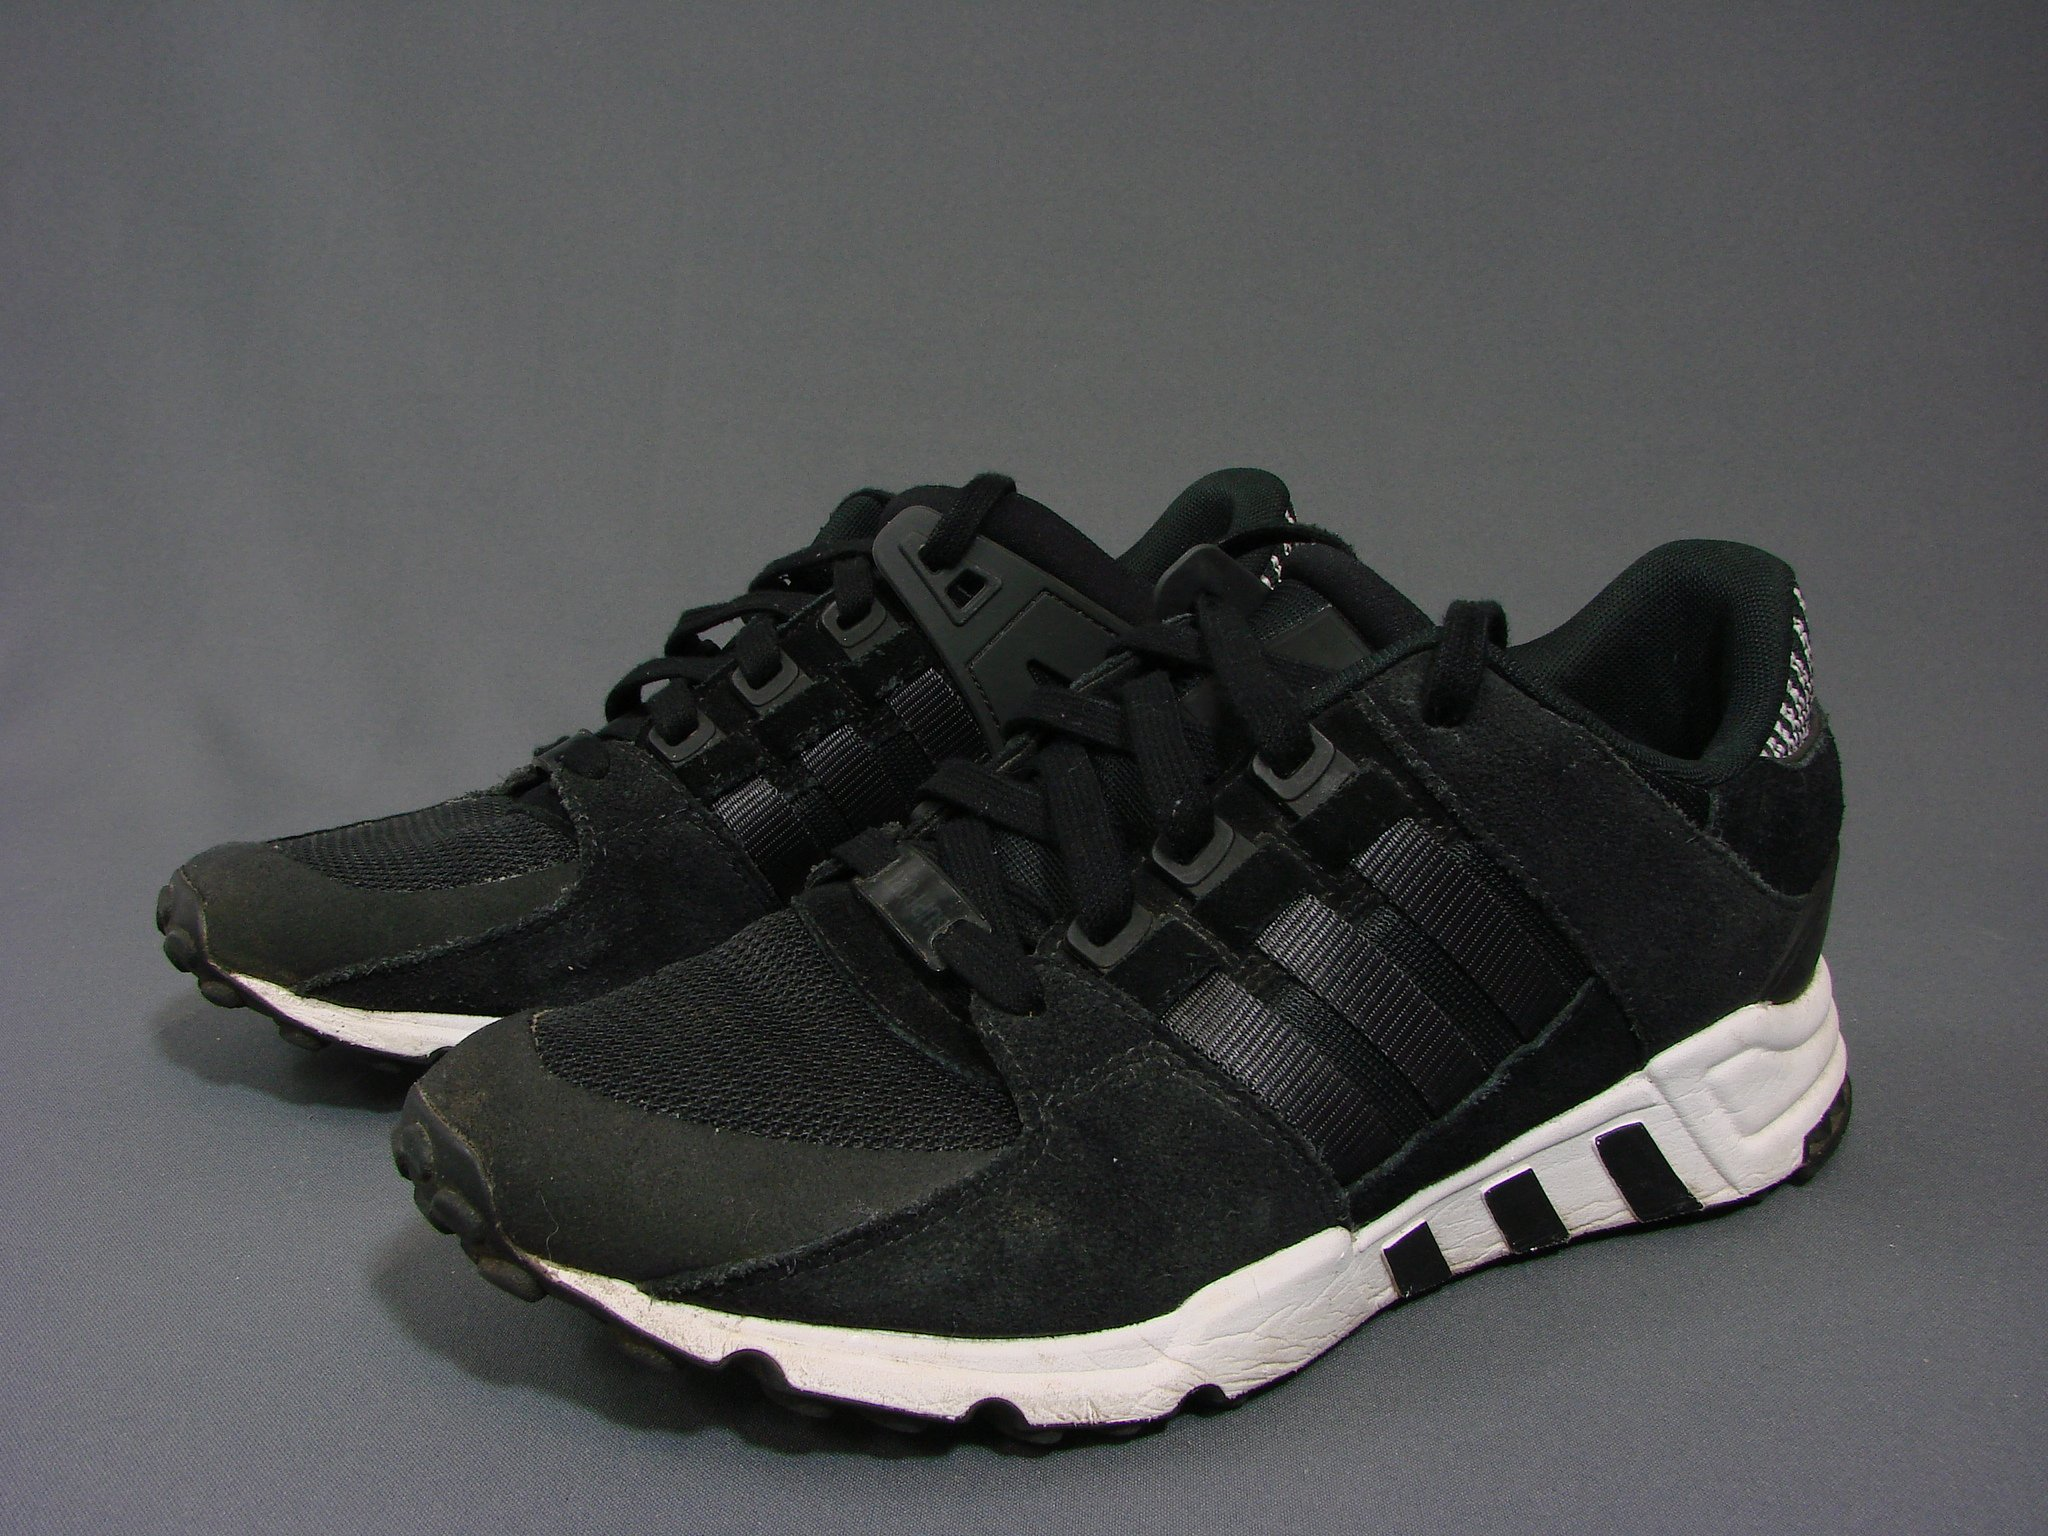 best website a7d8a 95f90 Obuwie Adidas EQT SUPPORT RF BY9623 r. 41 1/3